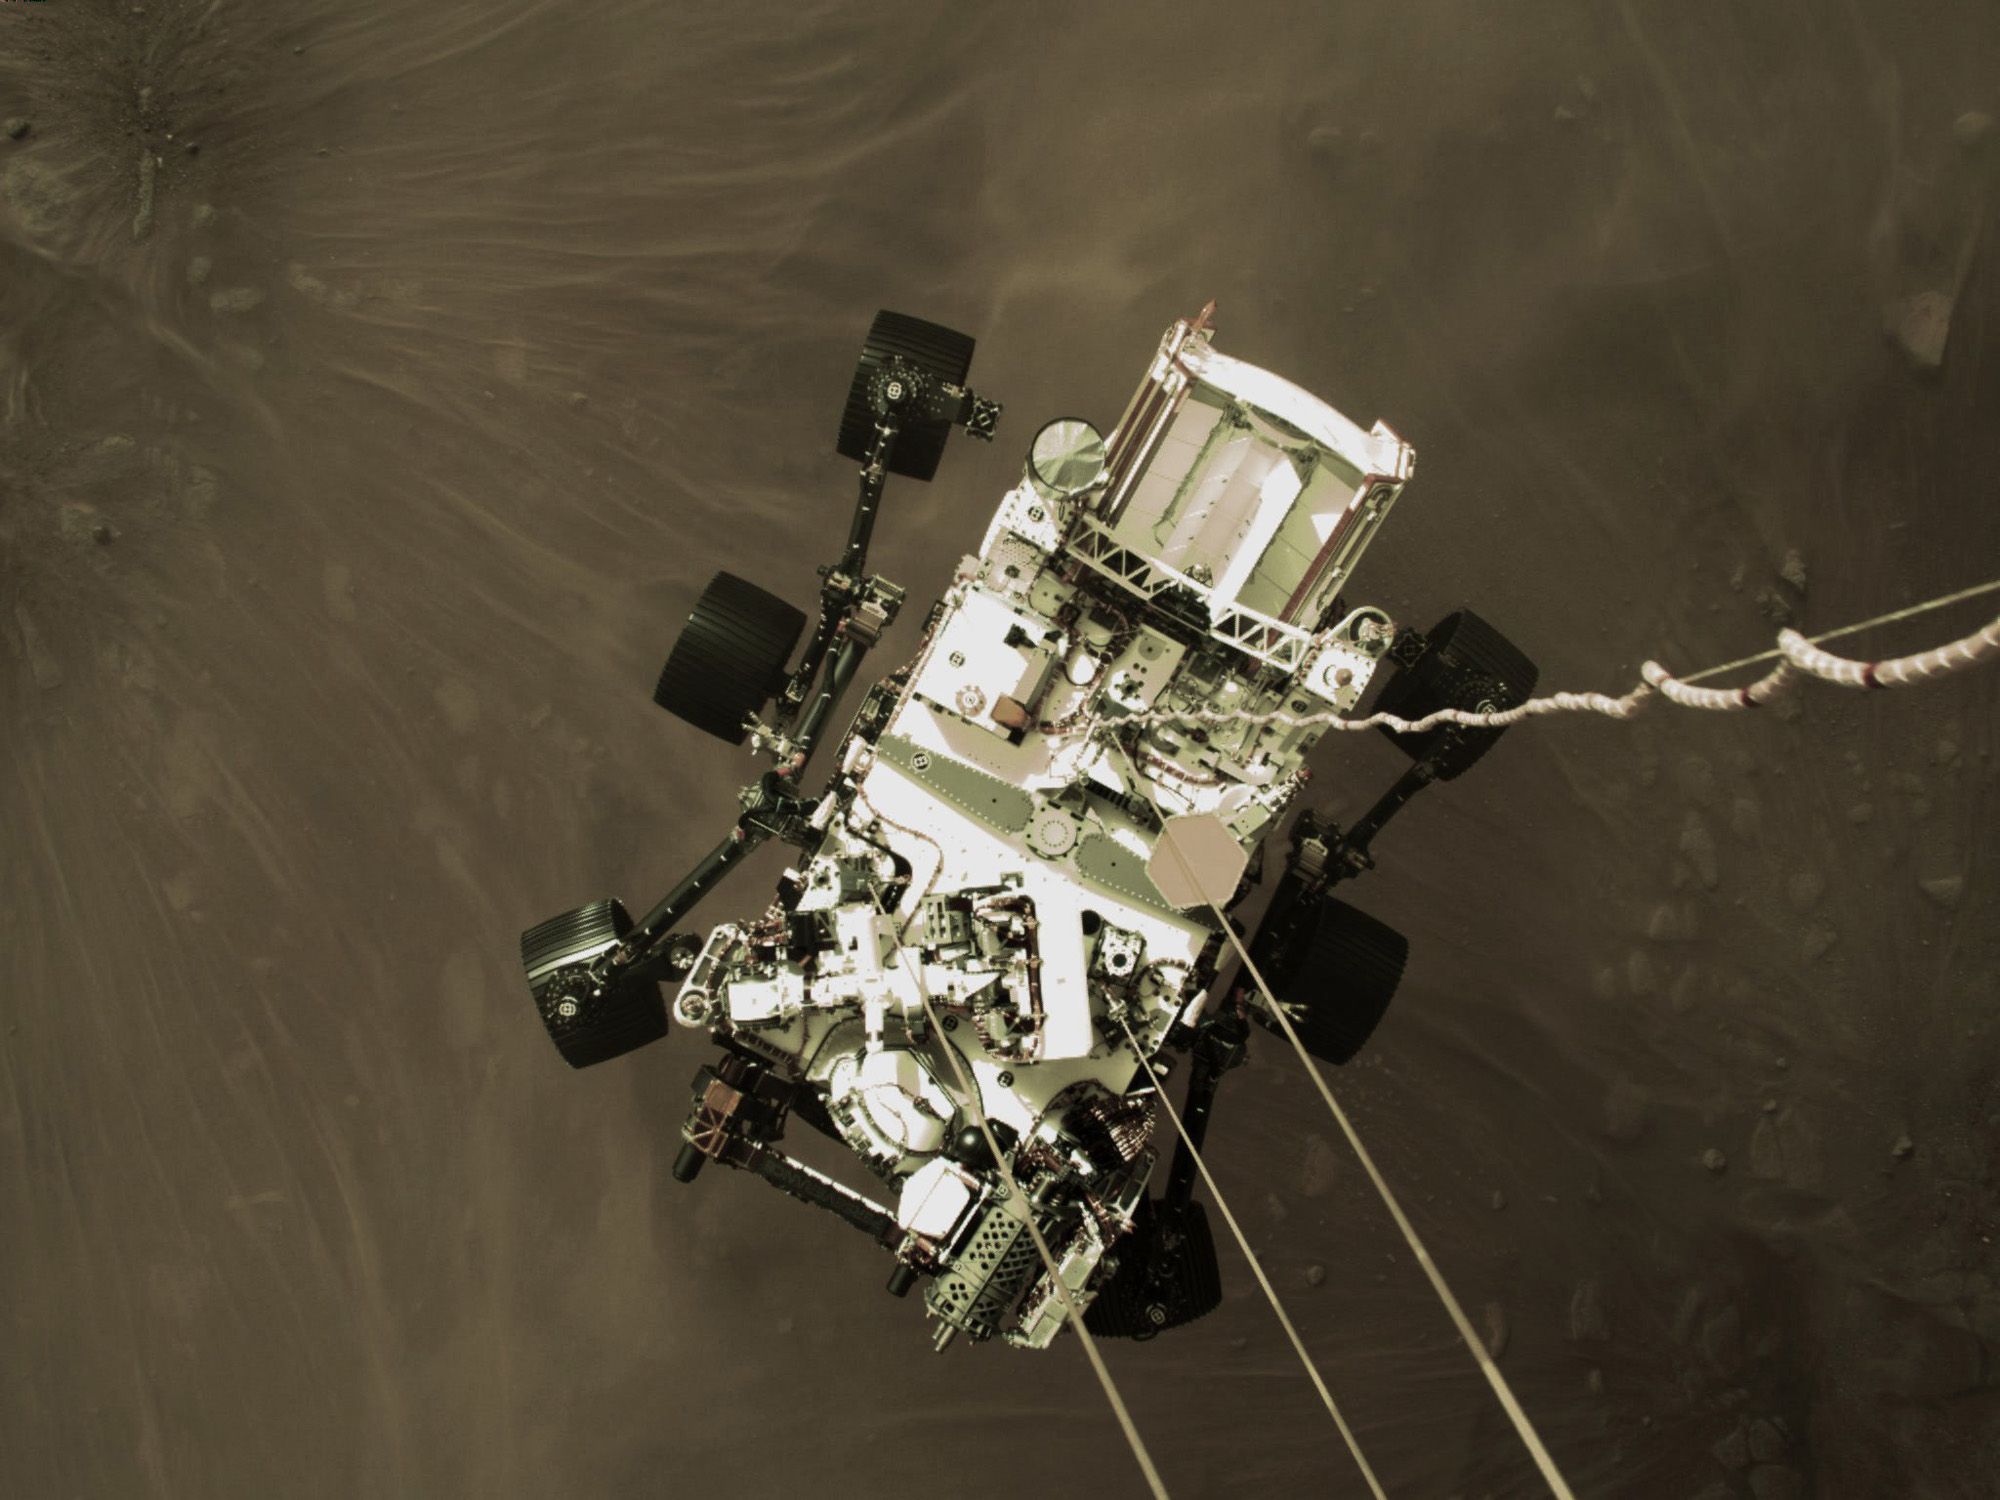 Wow! See the Perseverance rover dangling above Mars in this amazing landing photo